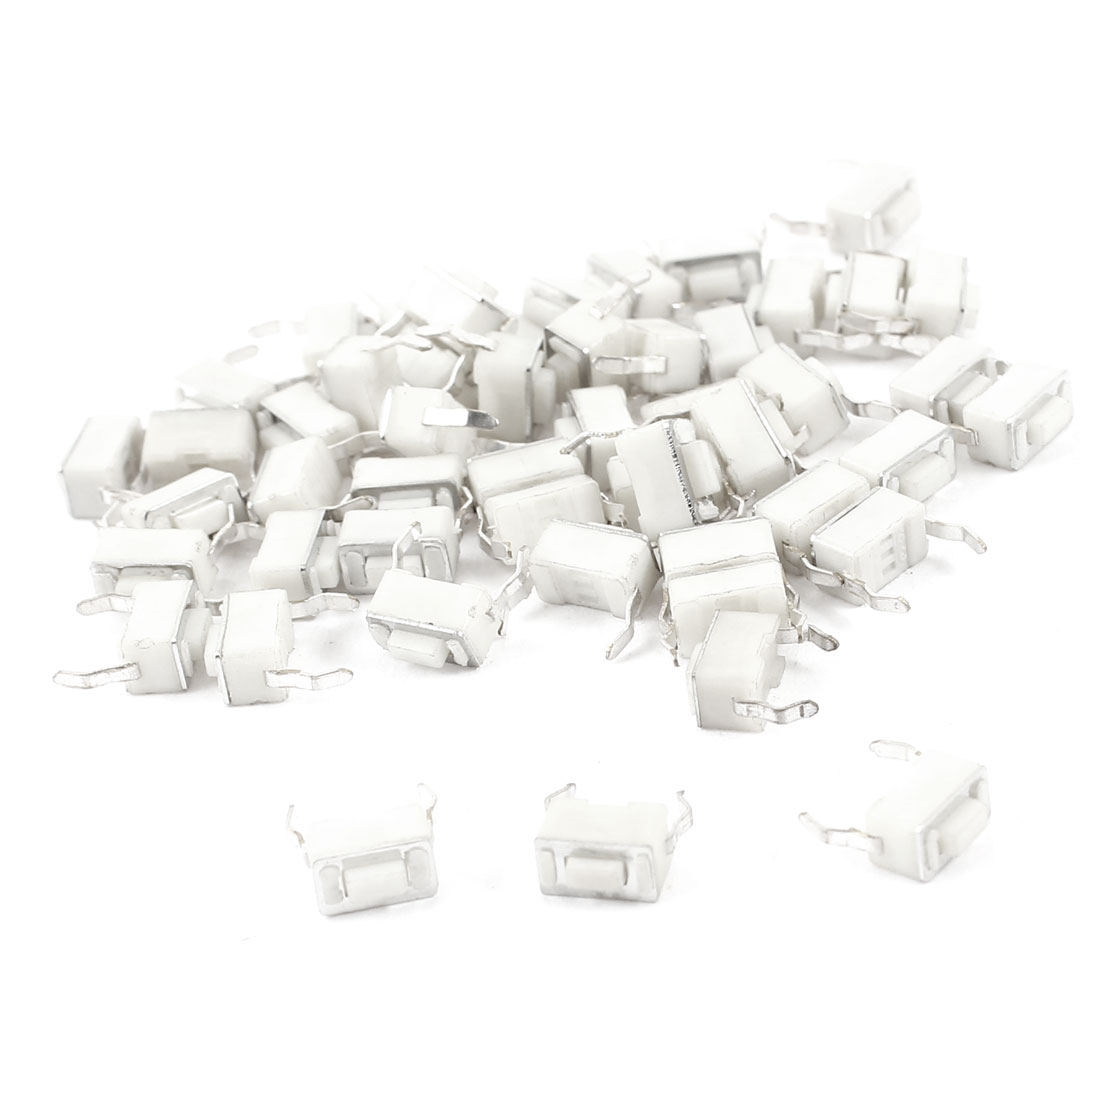 50pcs Momentary PCB Paeel Mount Rectangle Push Button SPST Tactile Tact Switch White 6mmx3mmx4.3mm